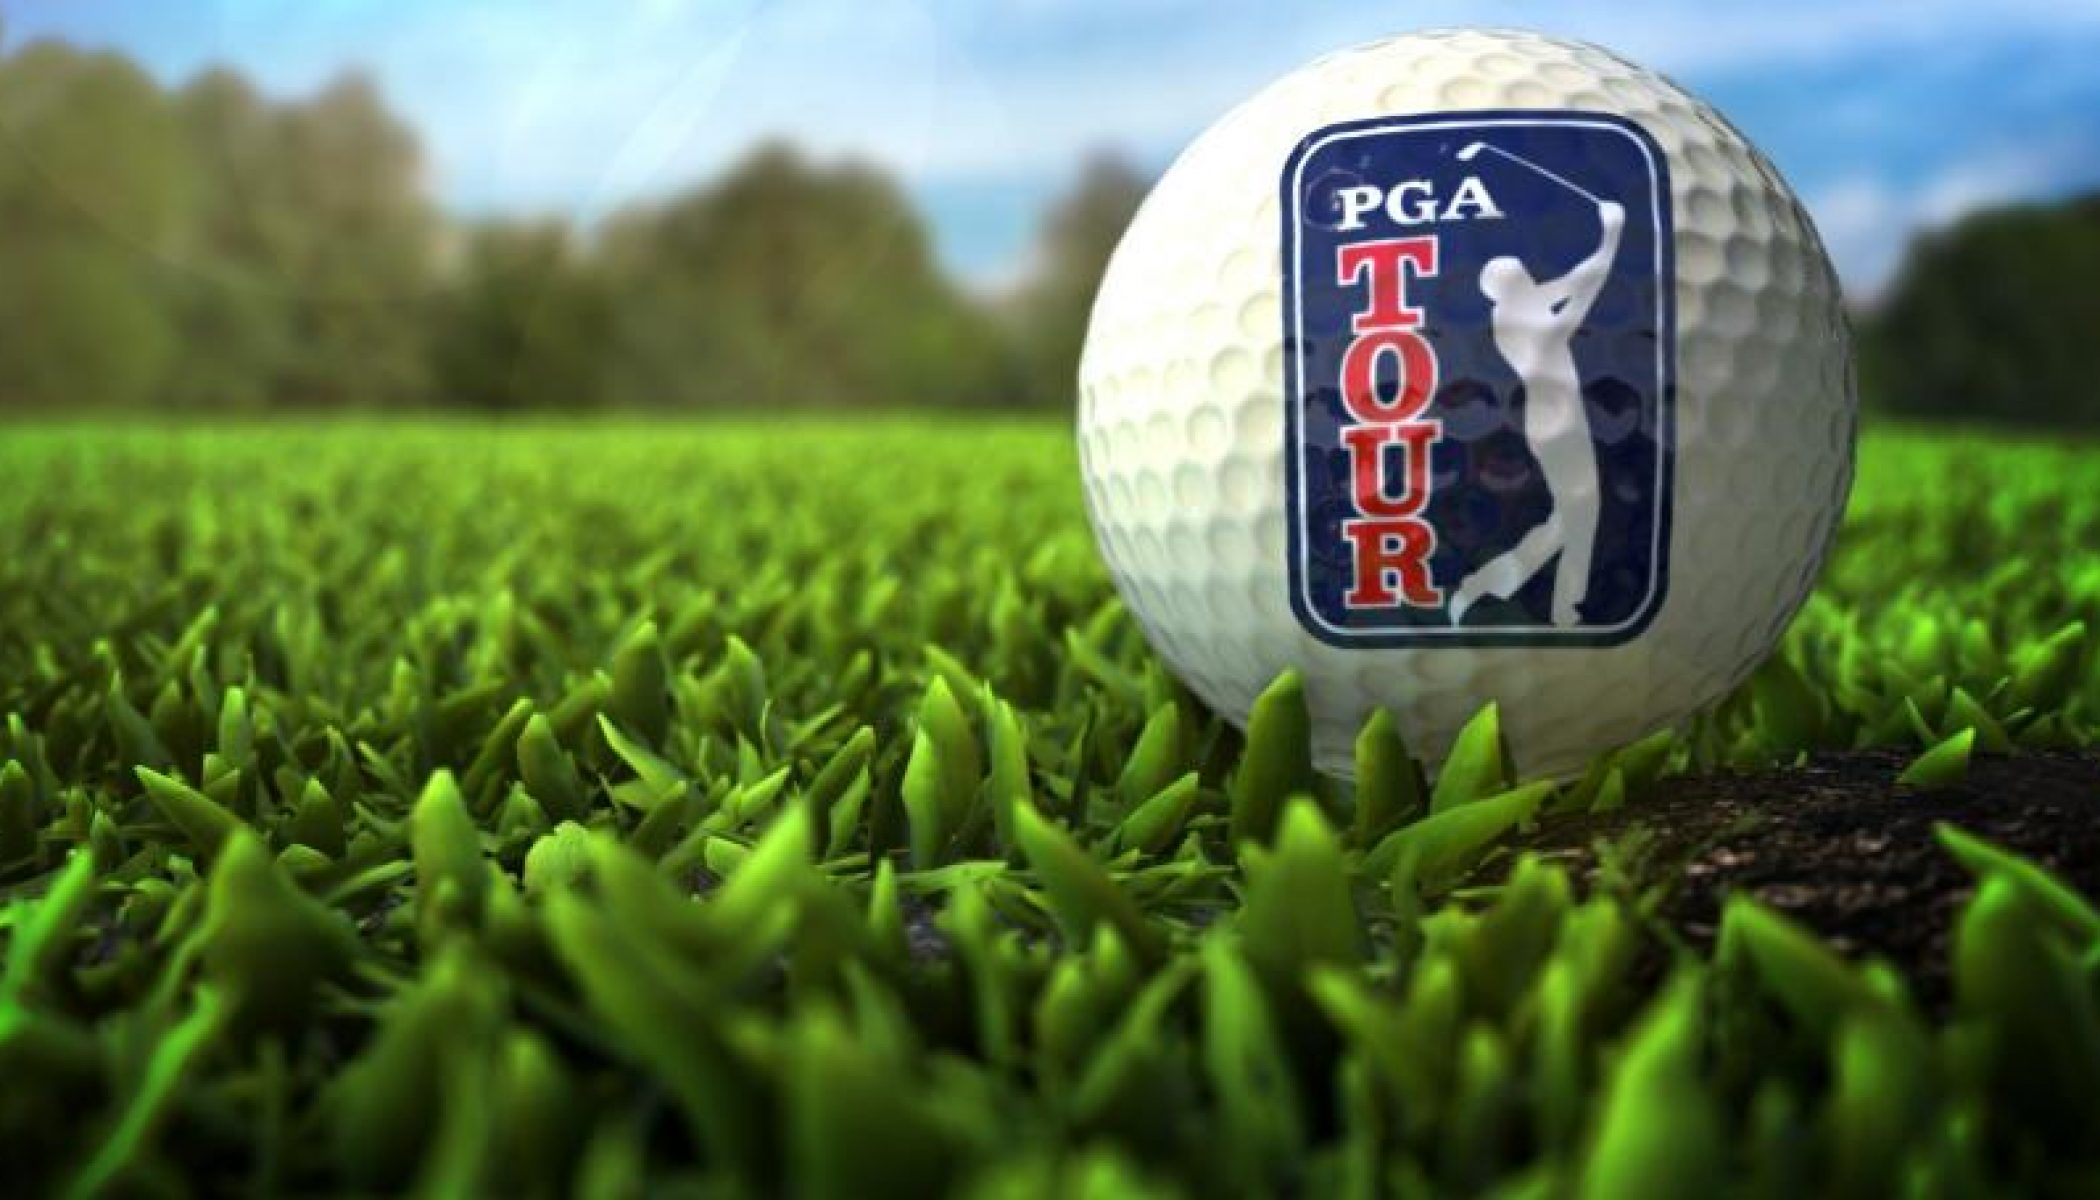 PGA TOUR Expands IMG ARENA Data Deal - iSportConnect